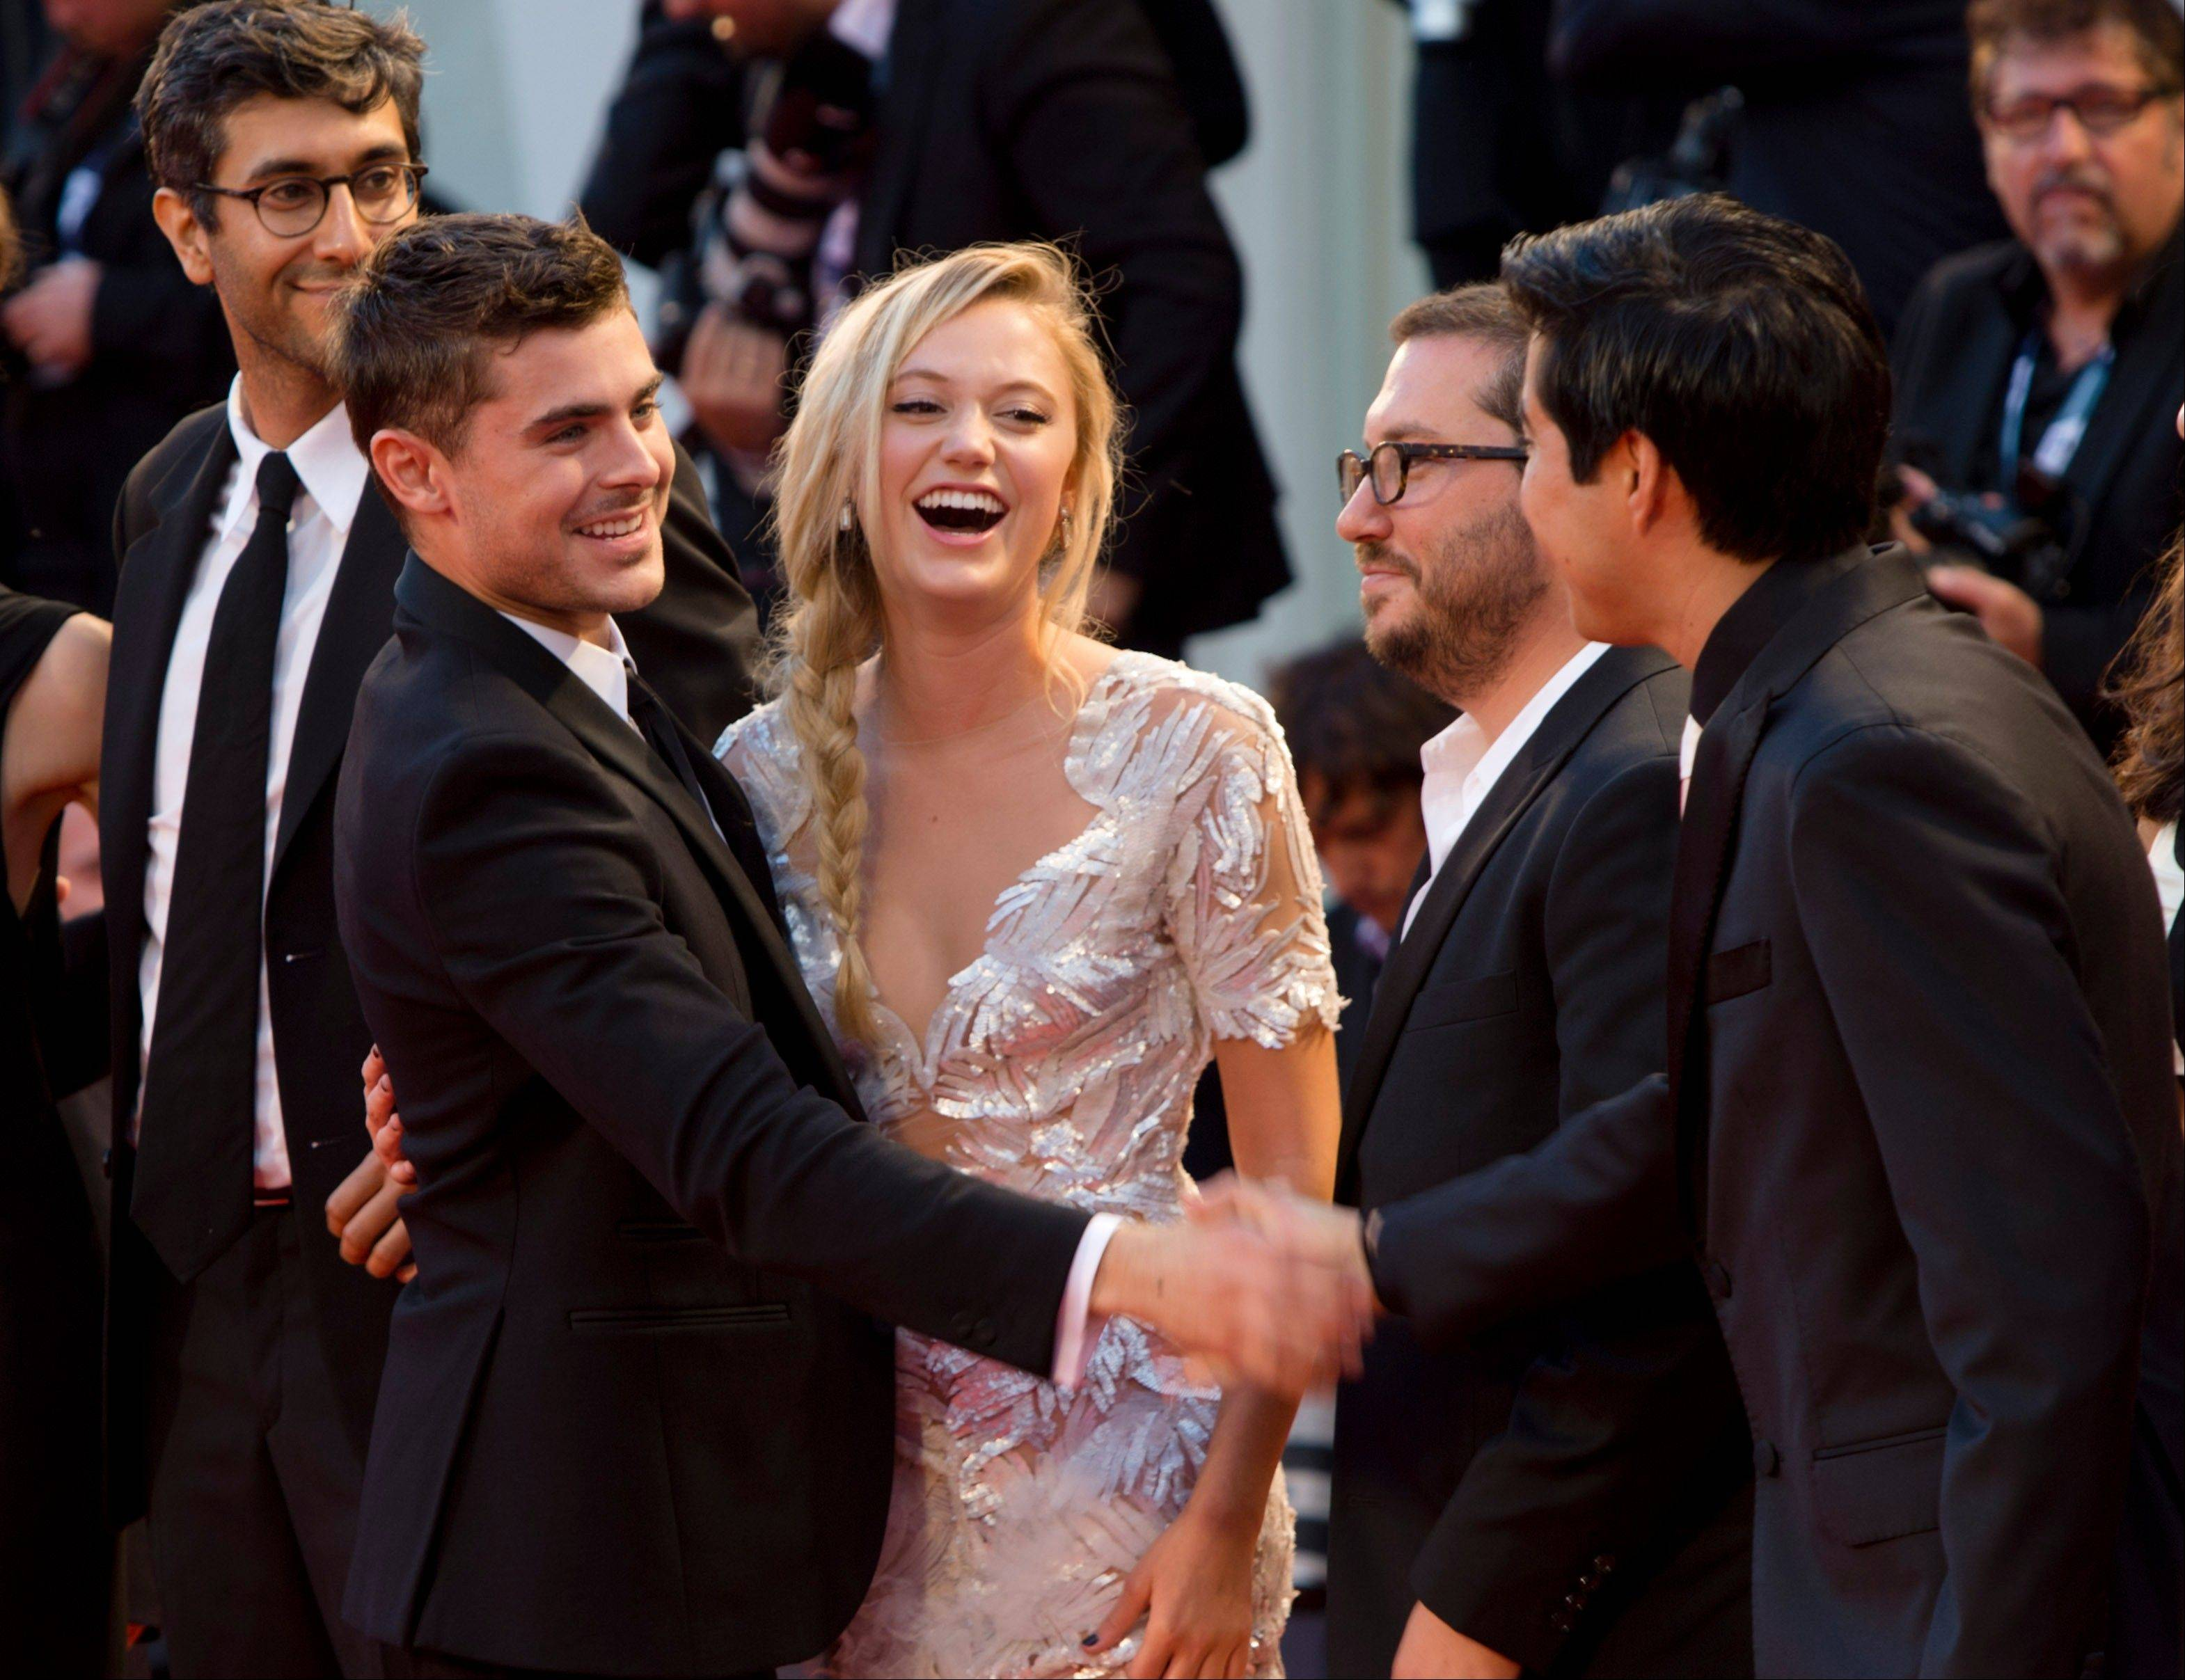 From left, director Ramin Bahrani, actor Zac Efron, actress Maika Monroe, an unidentifird guest, and producer Justin Nappi arrive Friday for the premiere of the movie 'At Any Price' at the 69th edition of the Venice Film Festival in Venice.